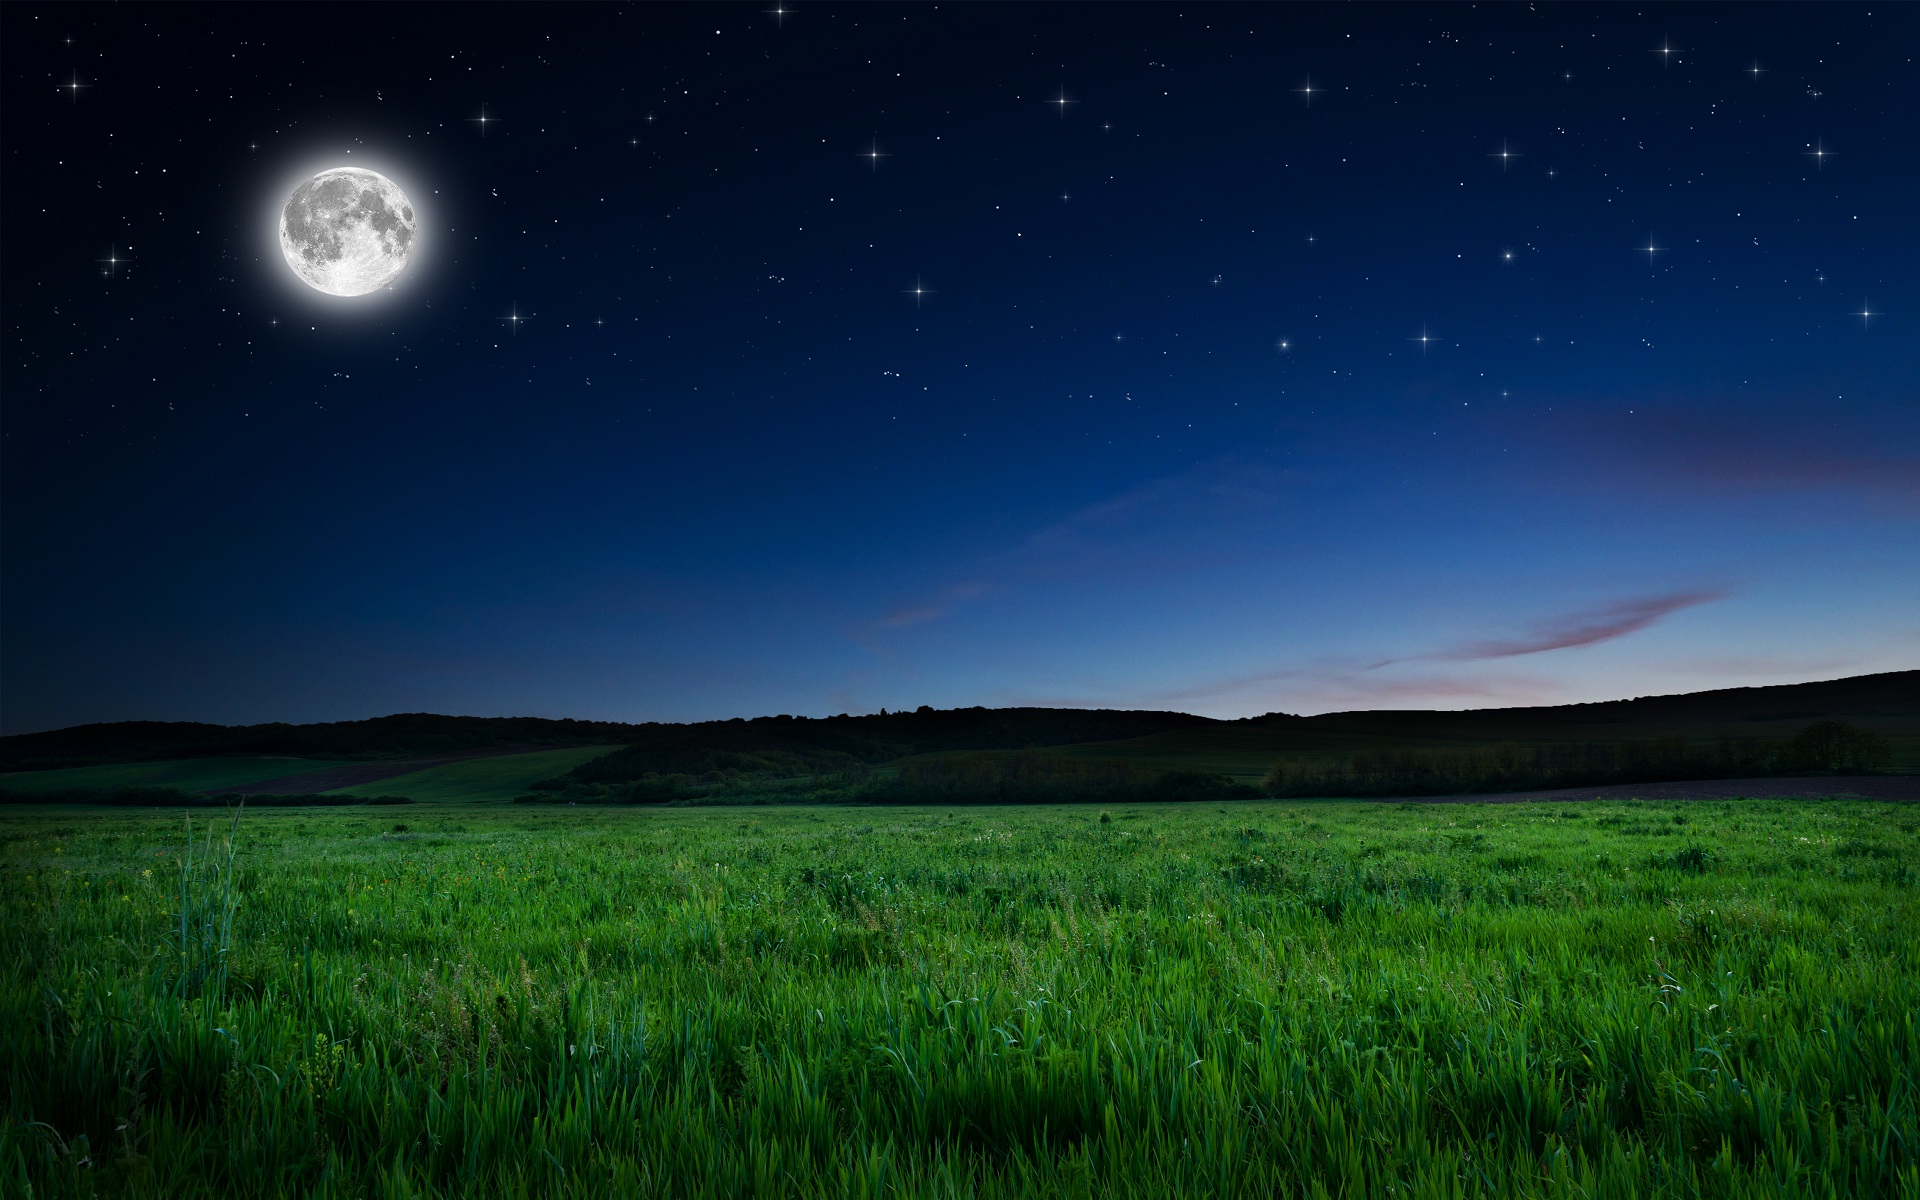 Night Wallpaper With Moon